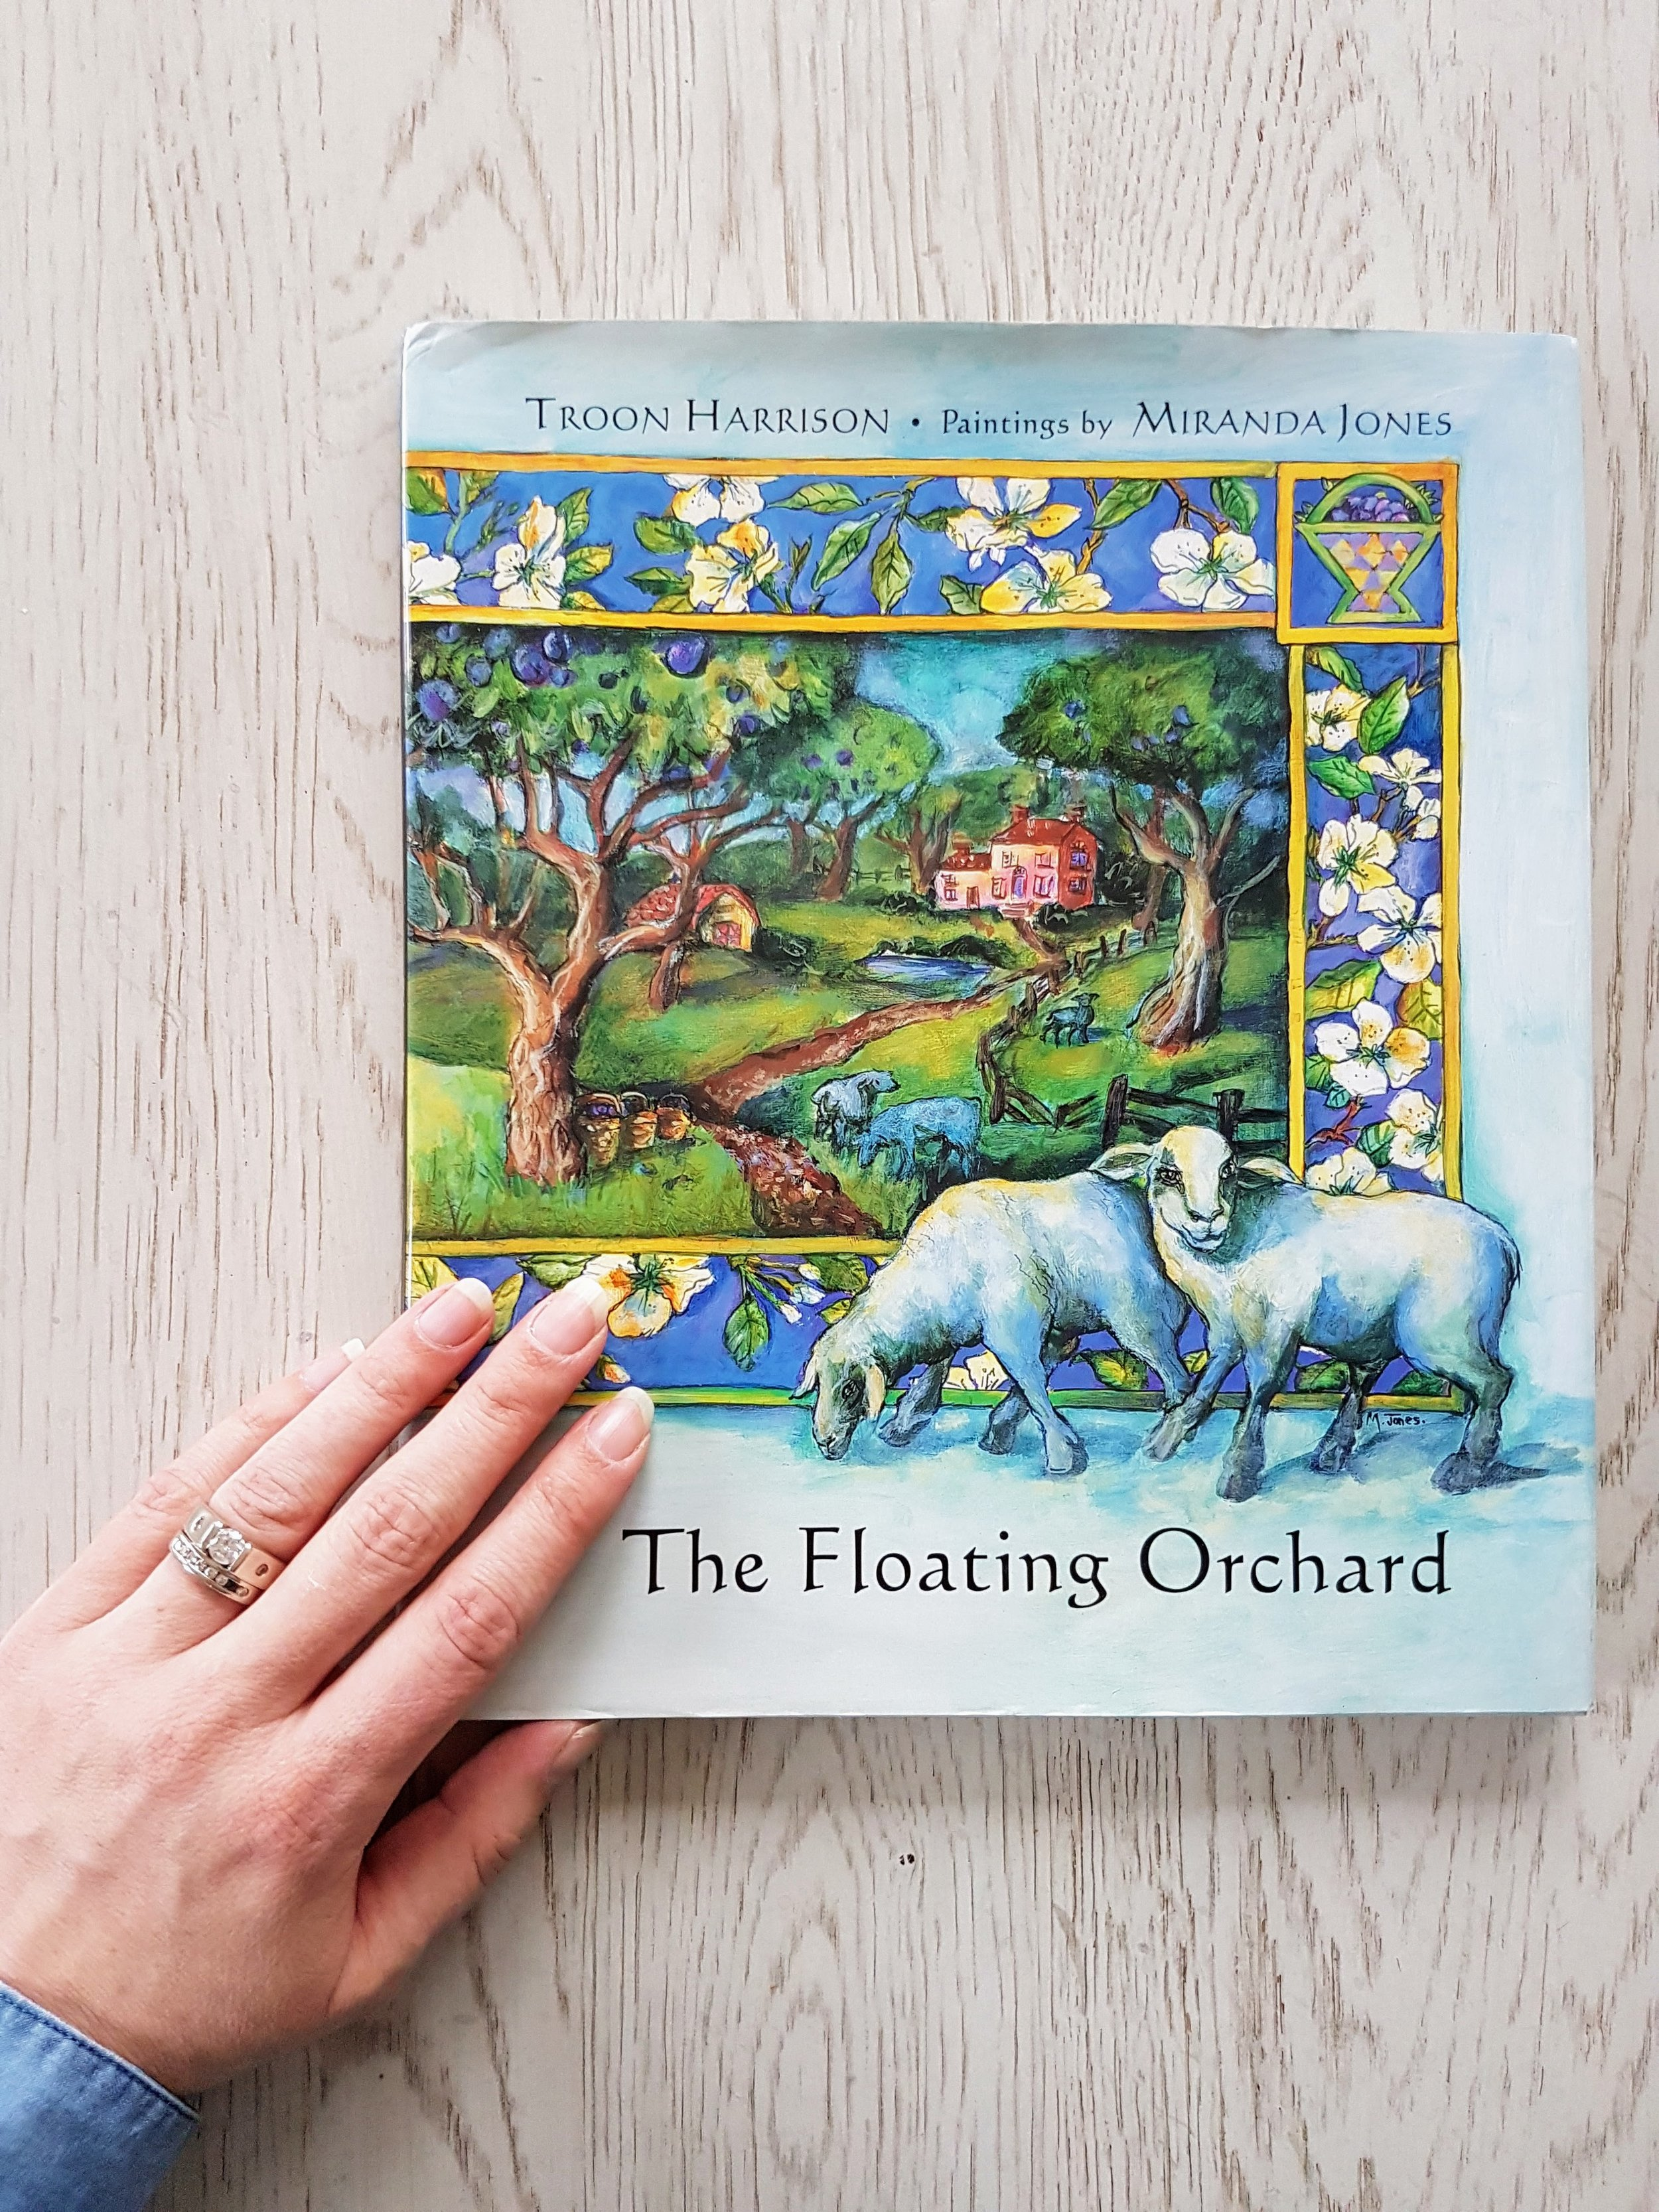 """""""The Floating Orchard""""  is a book my late Grandma Kardash gave me which her friend in the artist community had illustrated and signed with a note about her hope that my grandma could share it someday with her great-grandchildren. It's a beautiful story about loss and hope."""